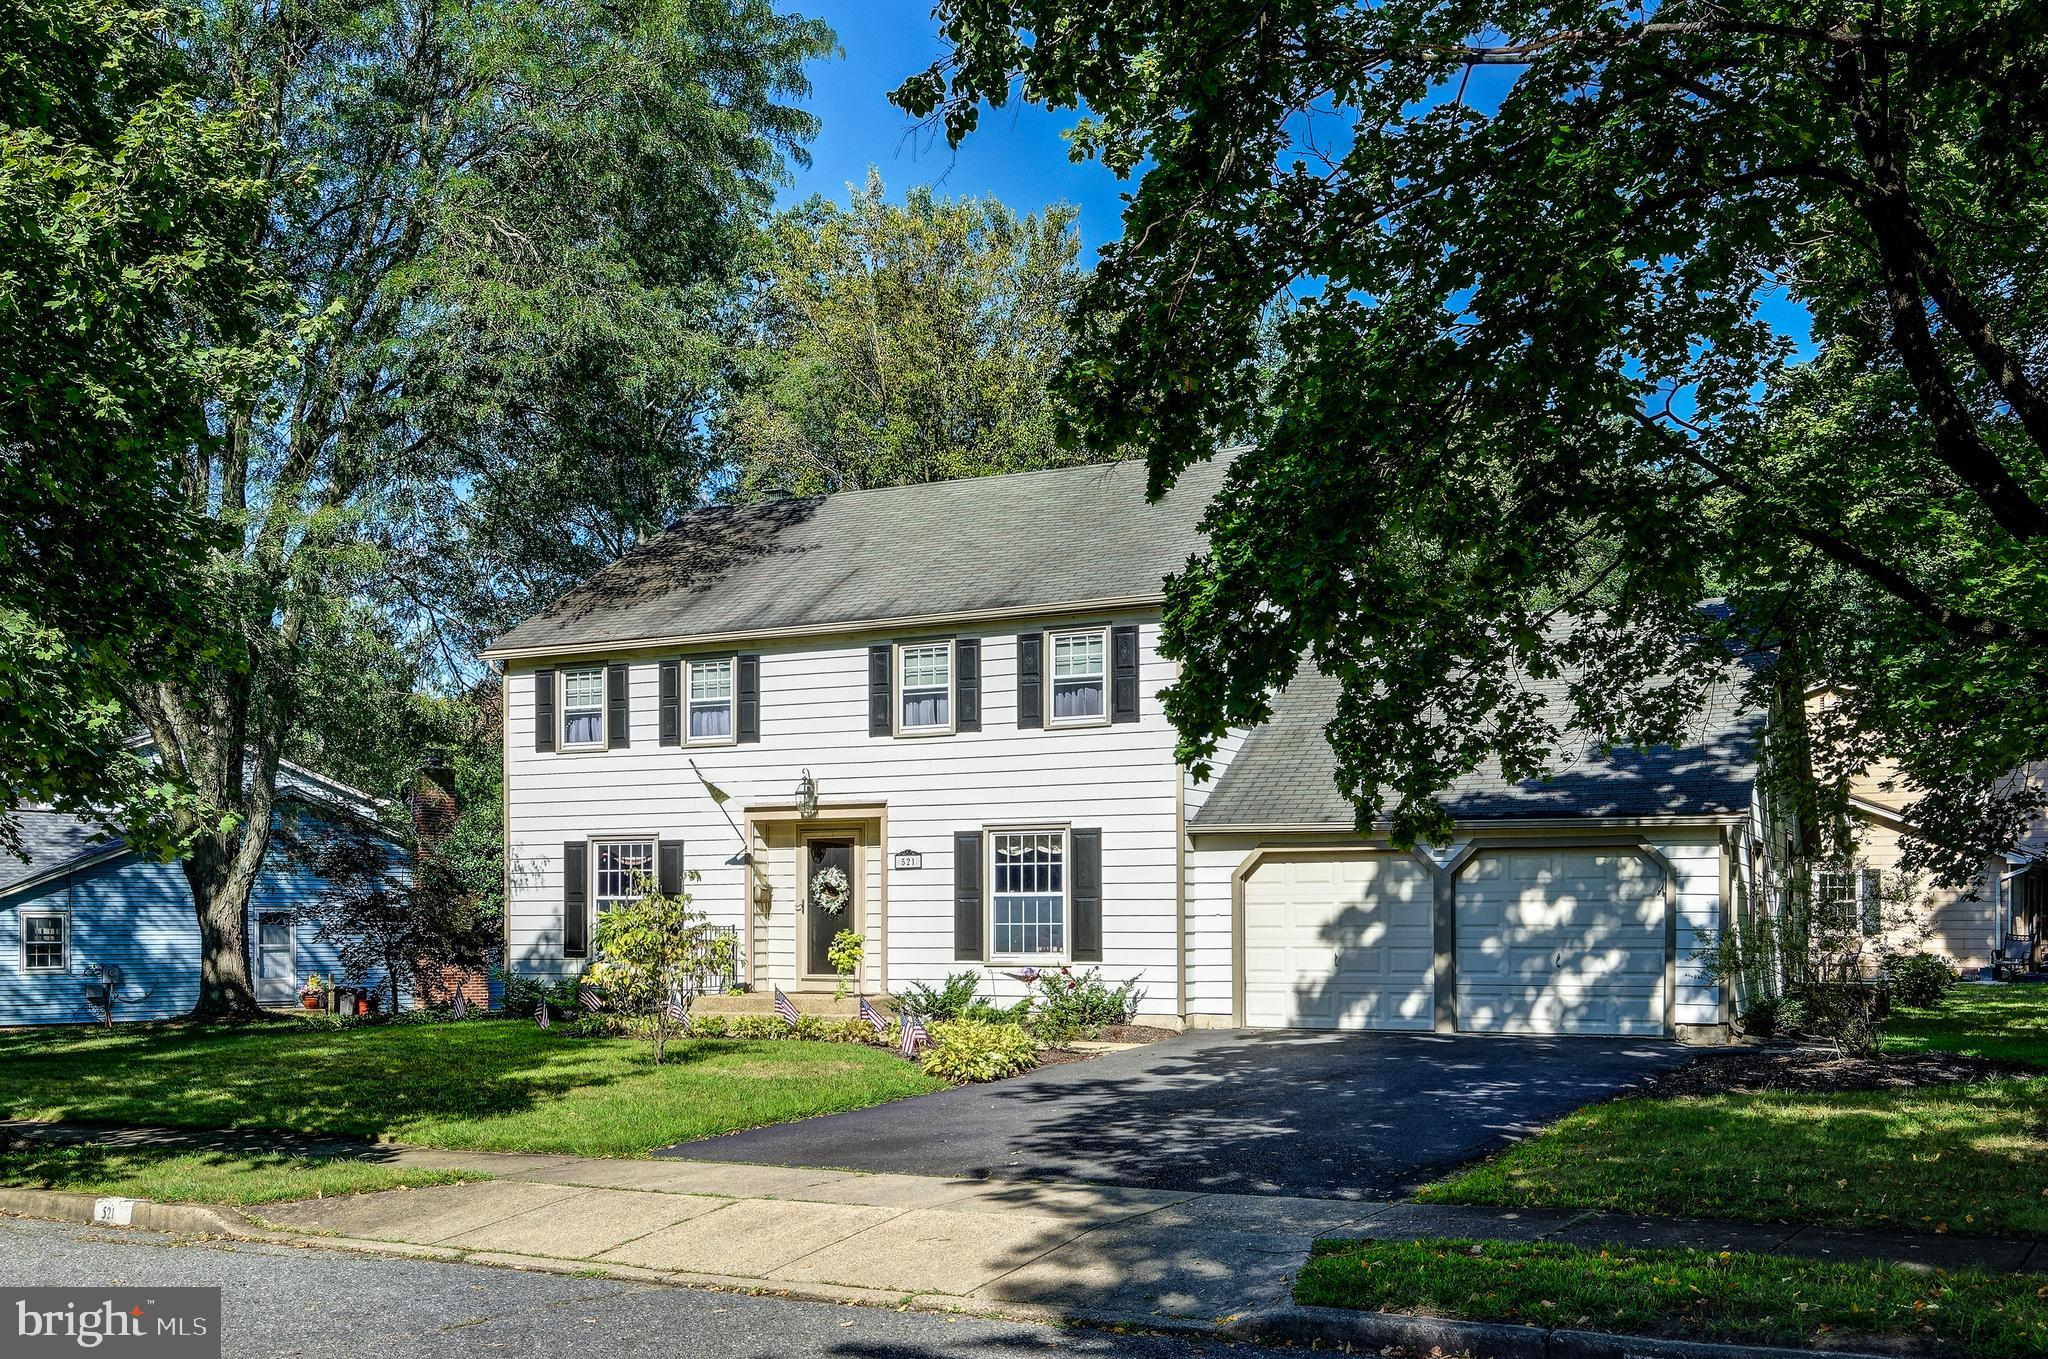 521 GUYER DRIVE, HADDON HEIGHTS, NJ 08035